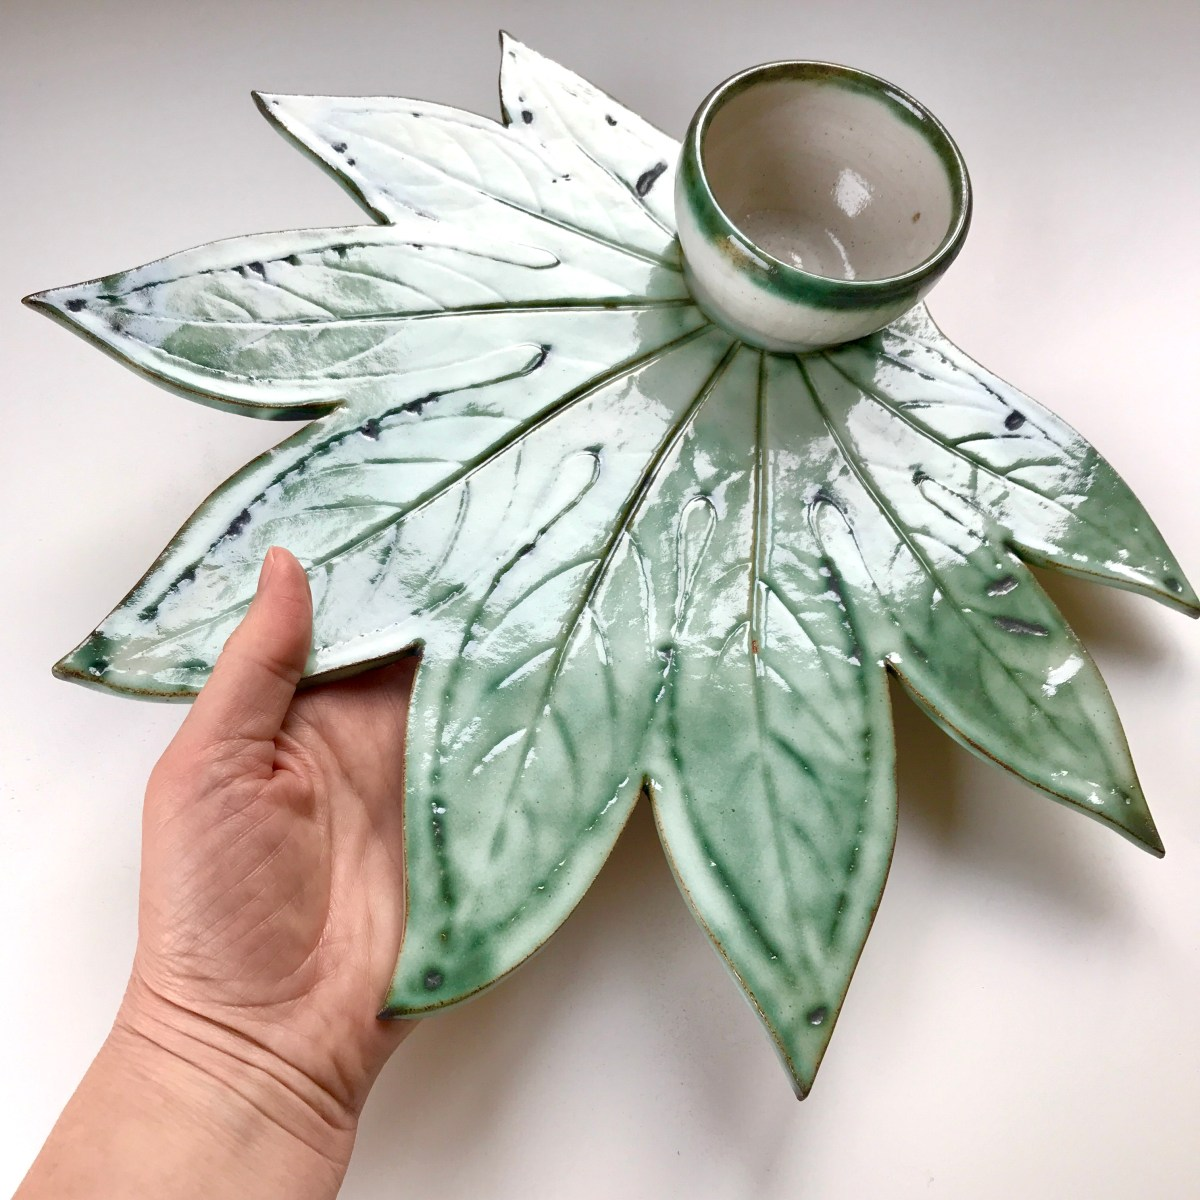 Fatsia Leaf Sharing Platter & Condiment Bowl by Sonya Ceramic Art (size context with hand)